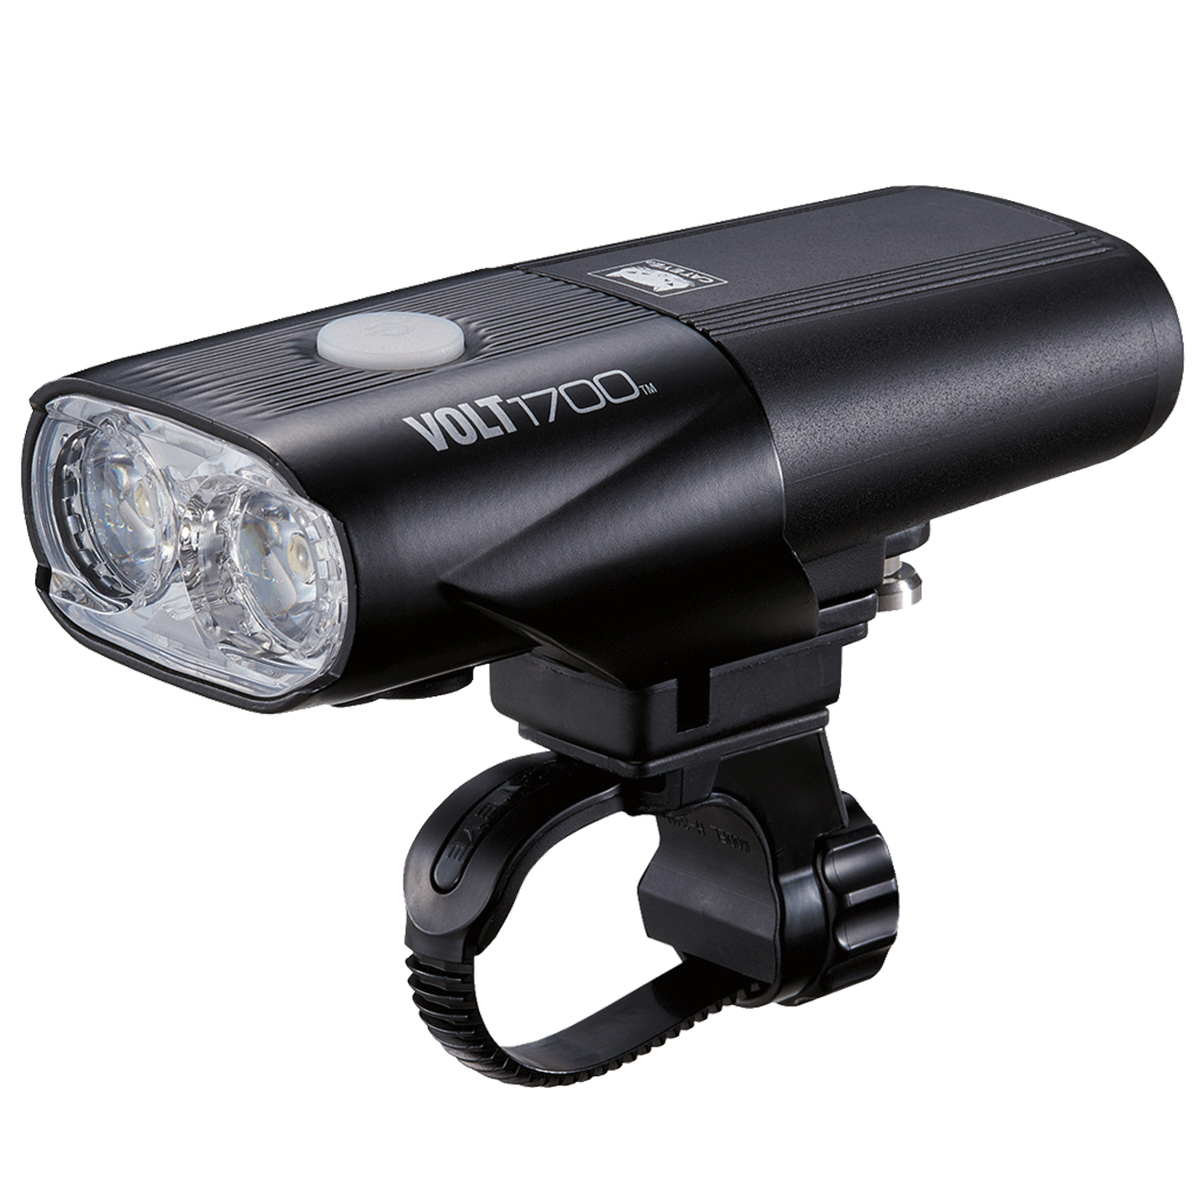 Cateye Volt 1700 Rechargeable Front Bike Light